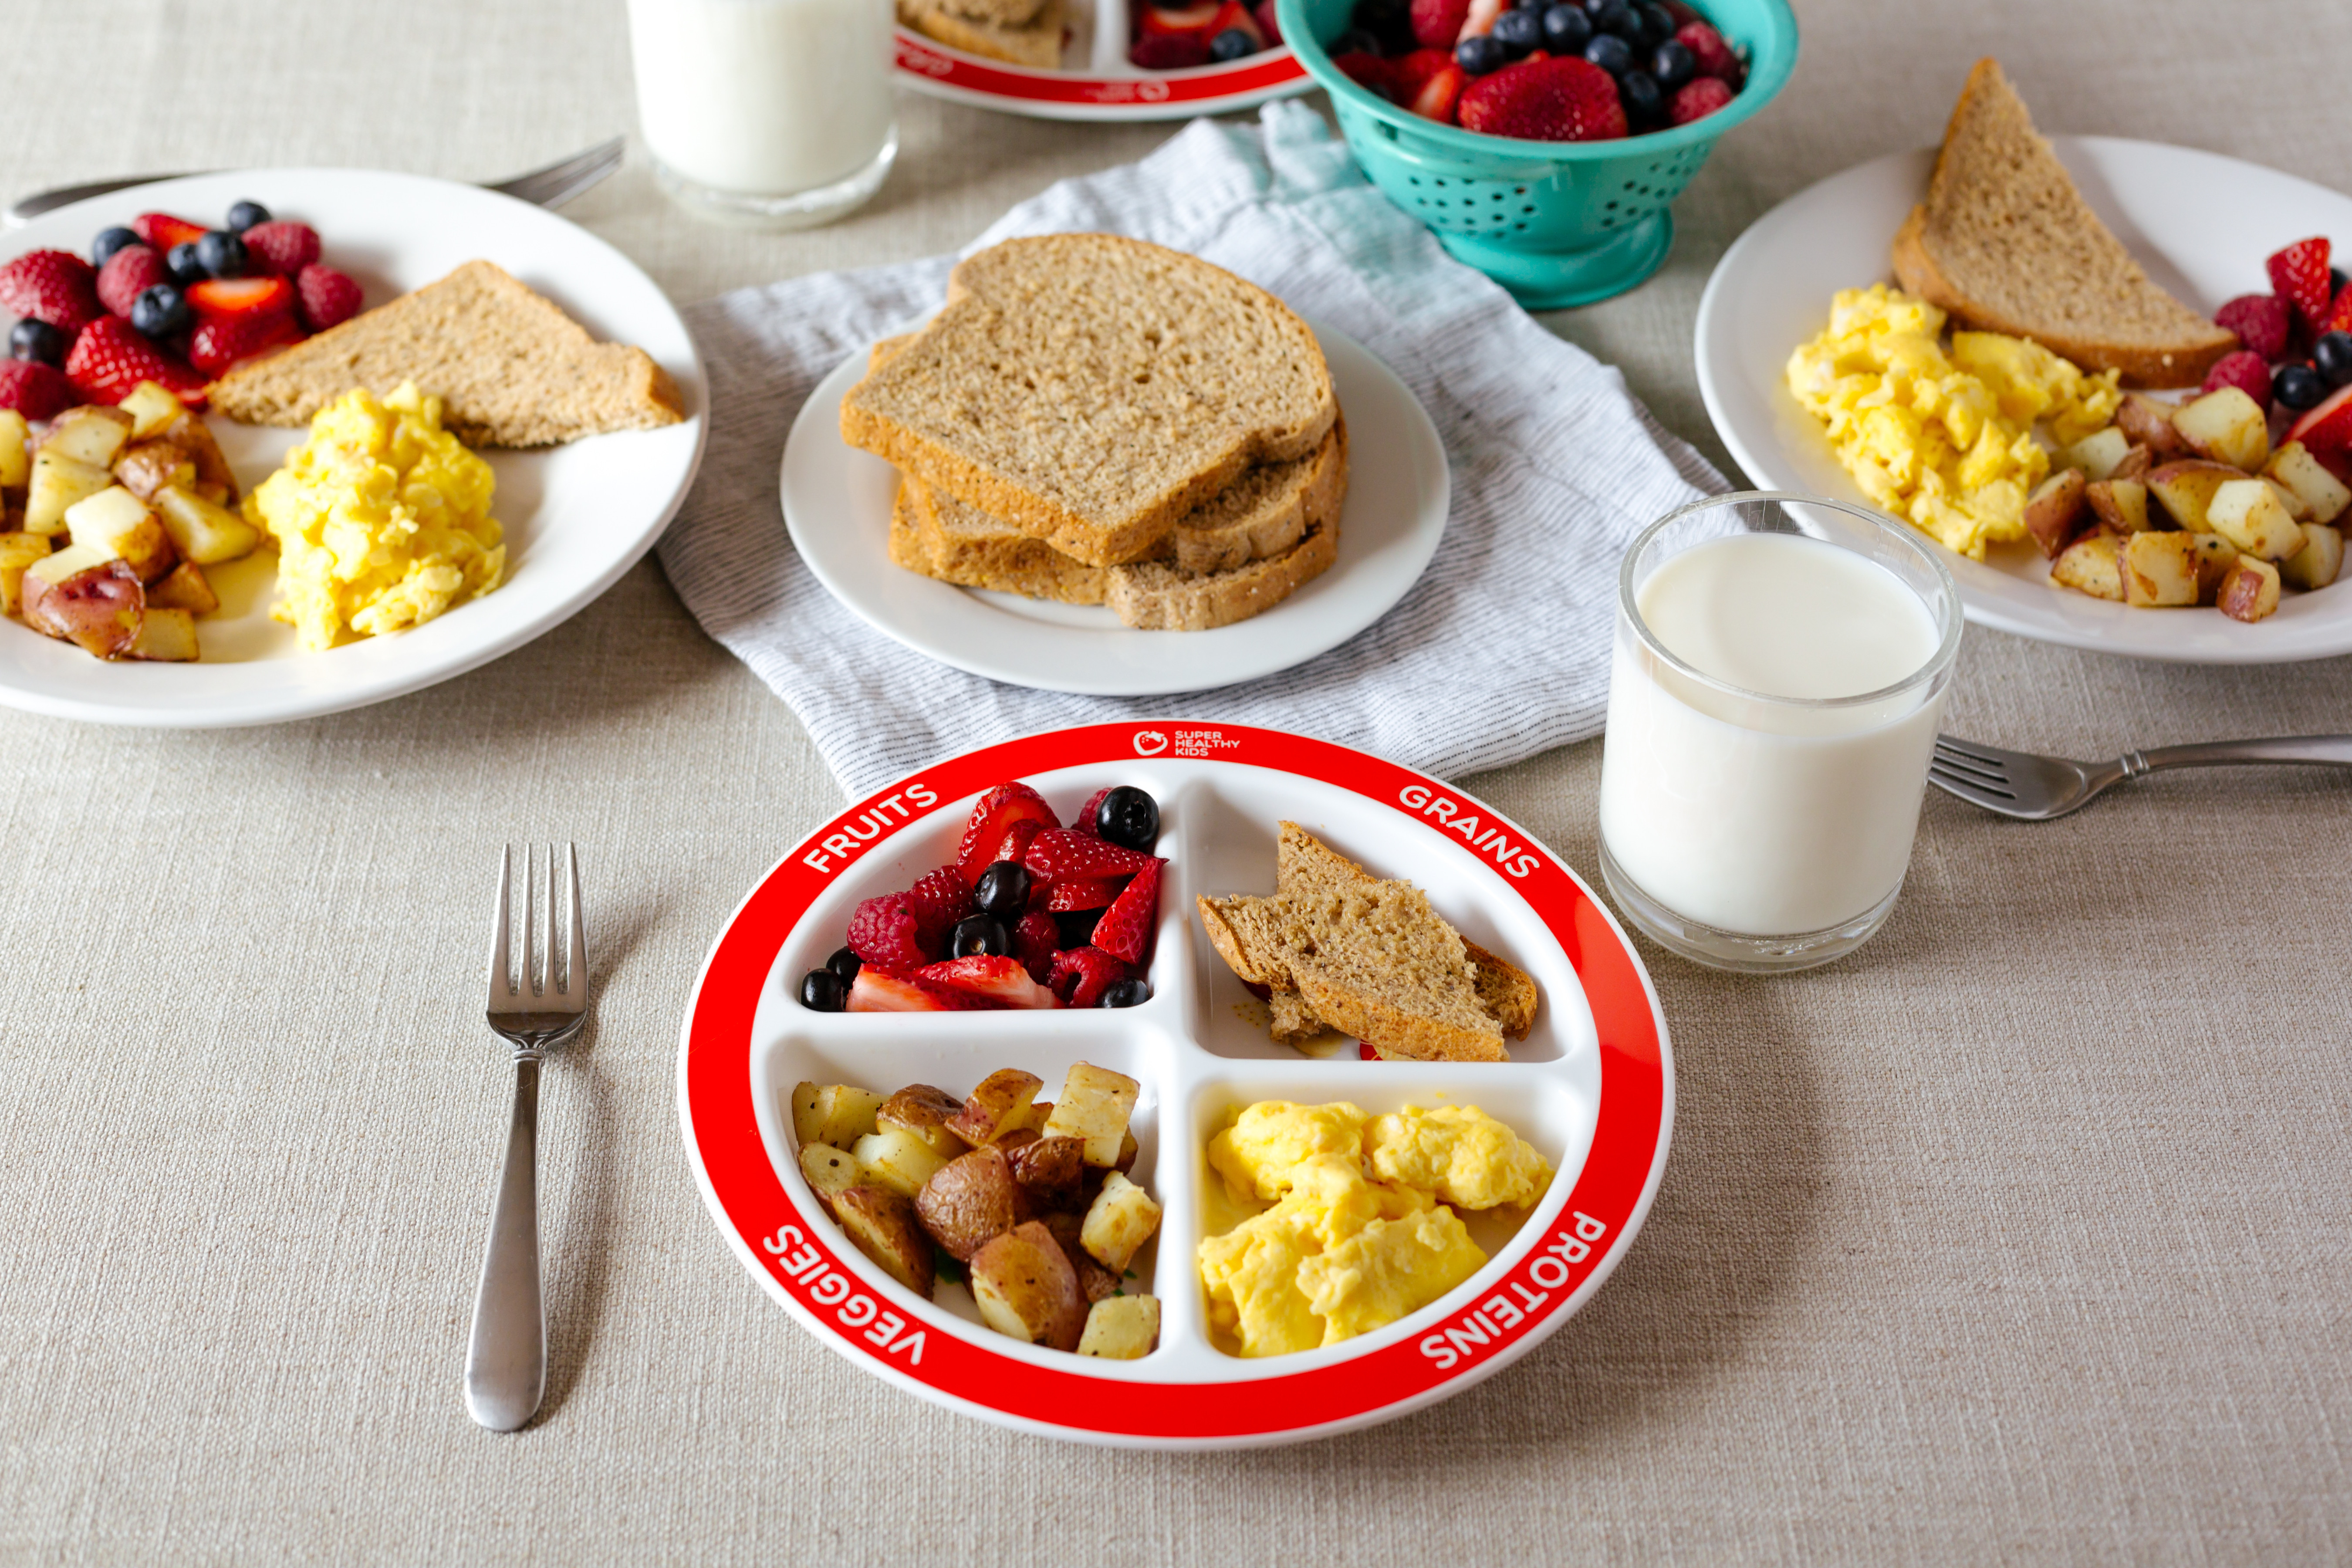 Healthy Meals For Breakfast  Healthy Balanced Breakfast with MyPlate